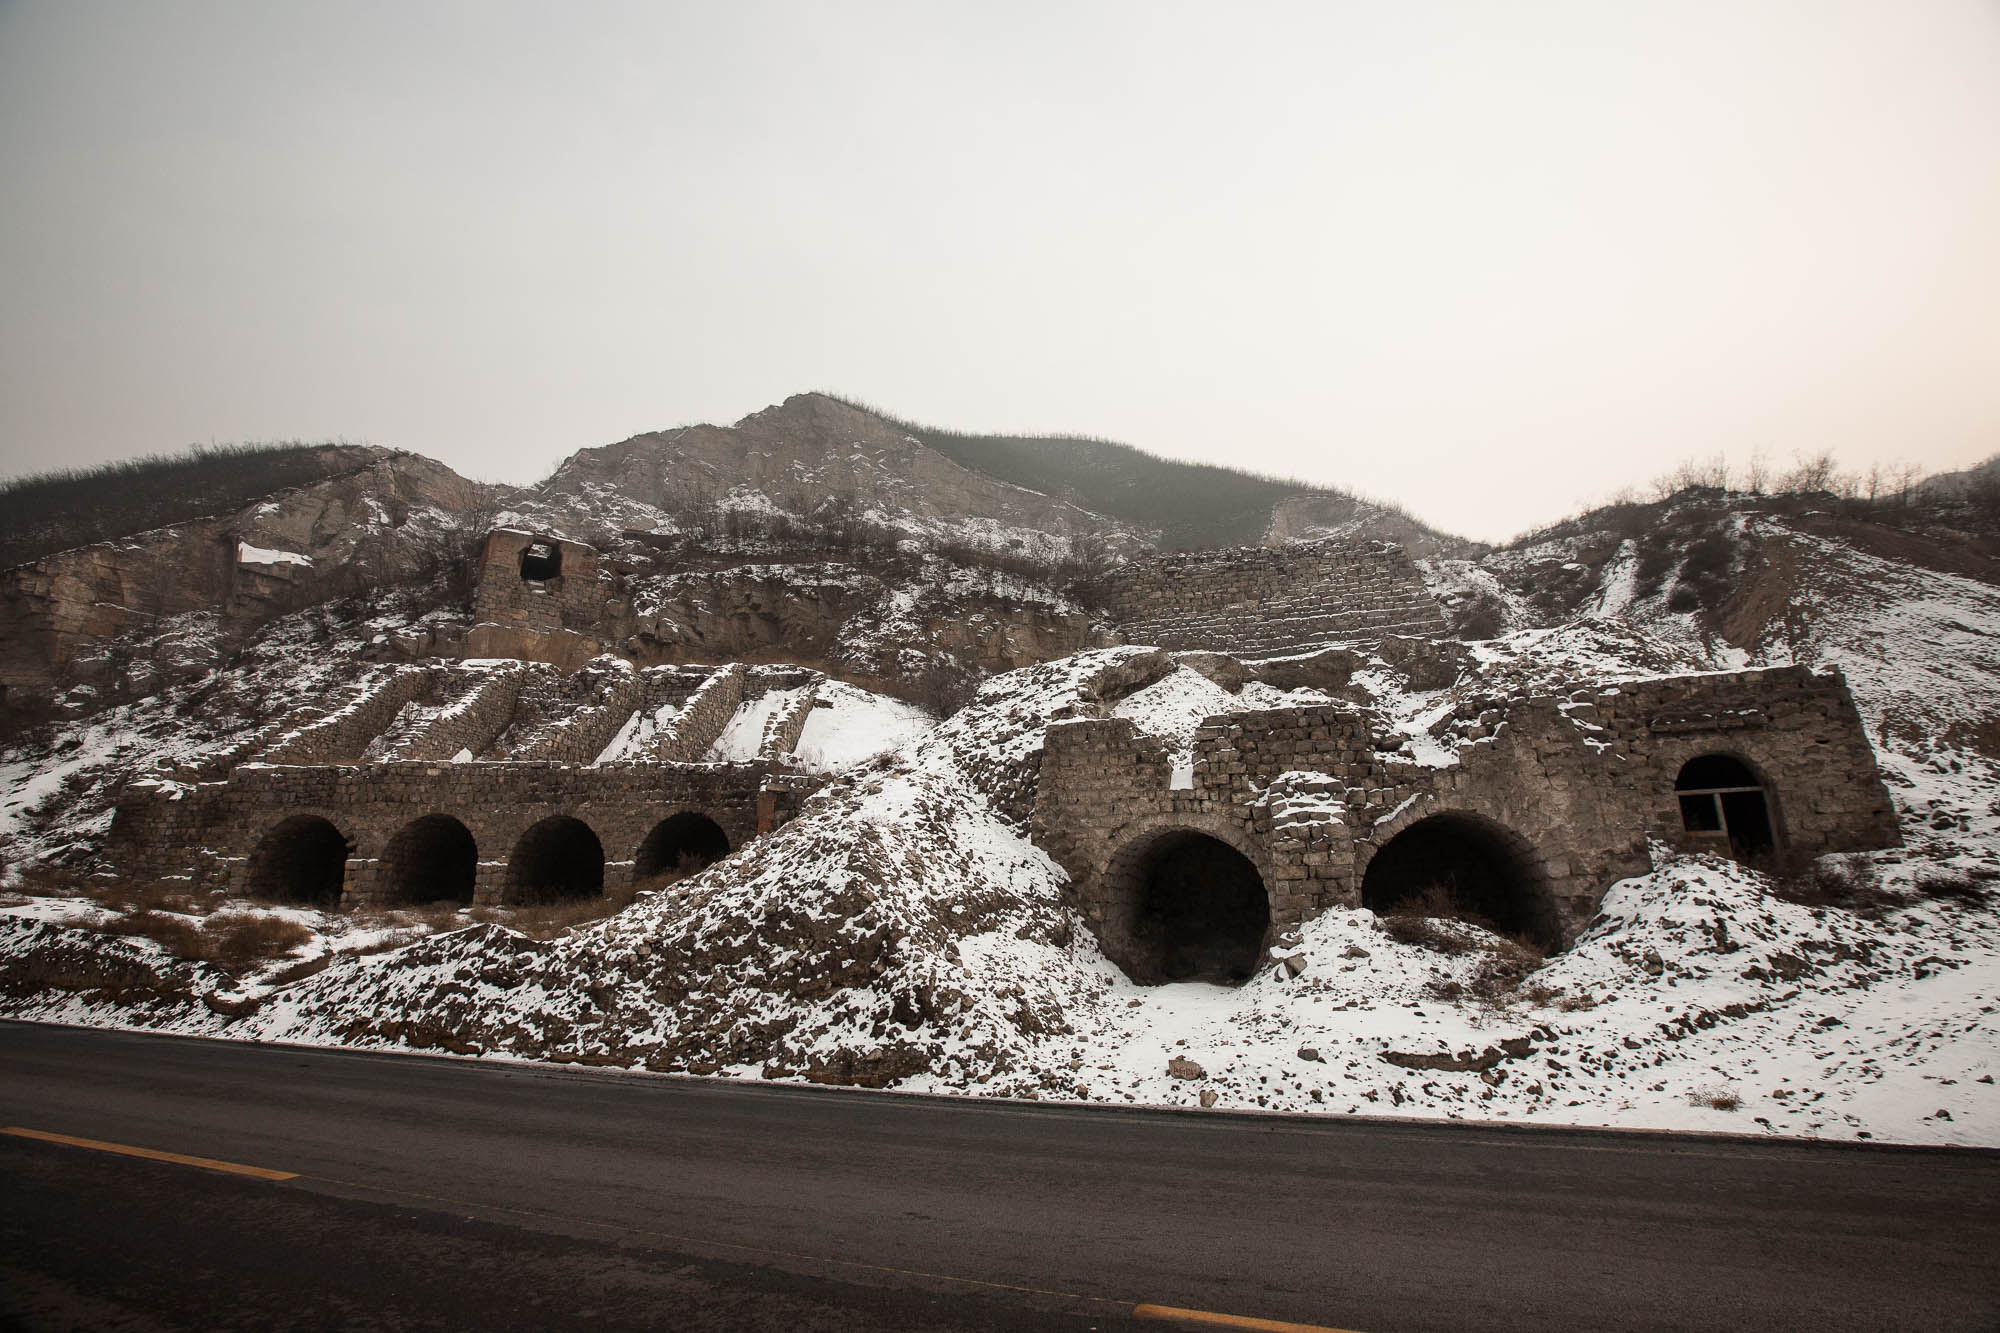 caves in Shanxi